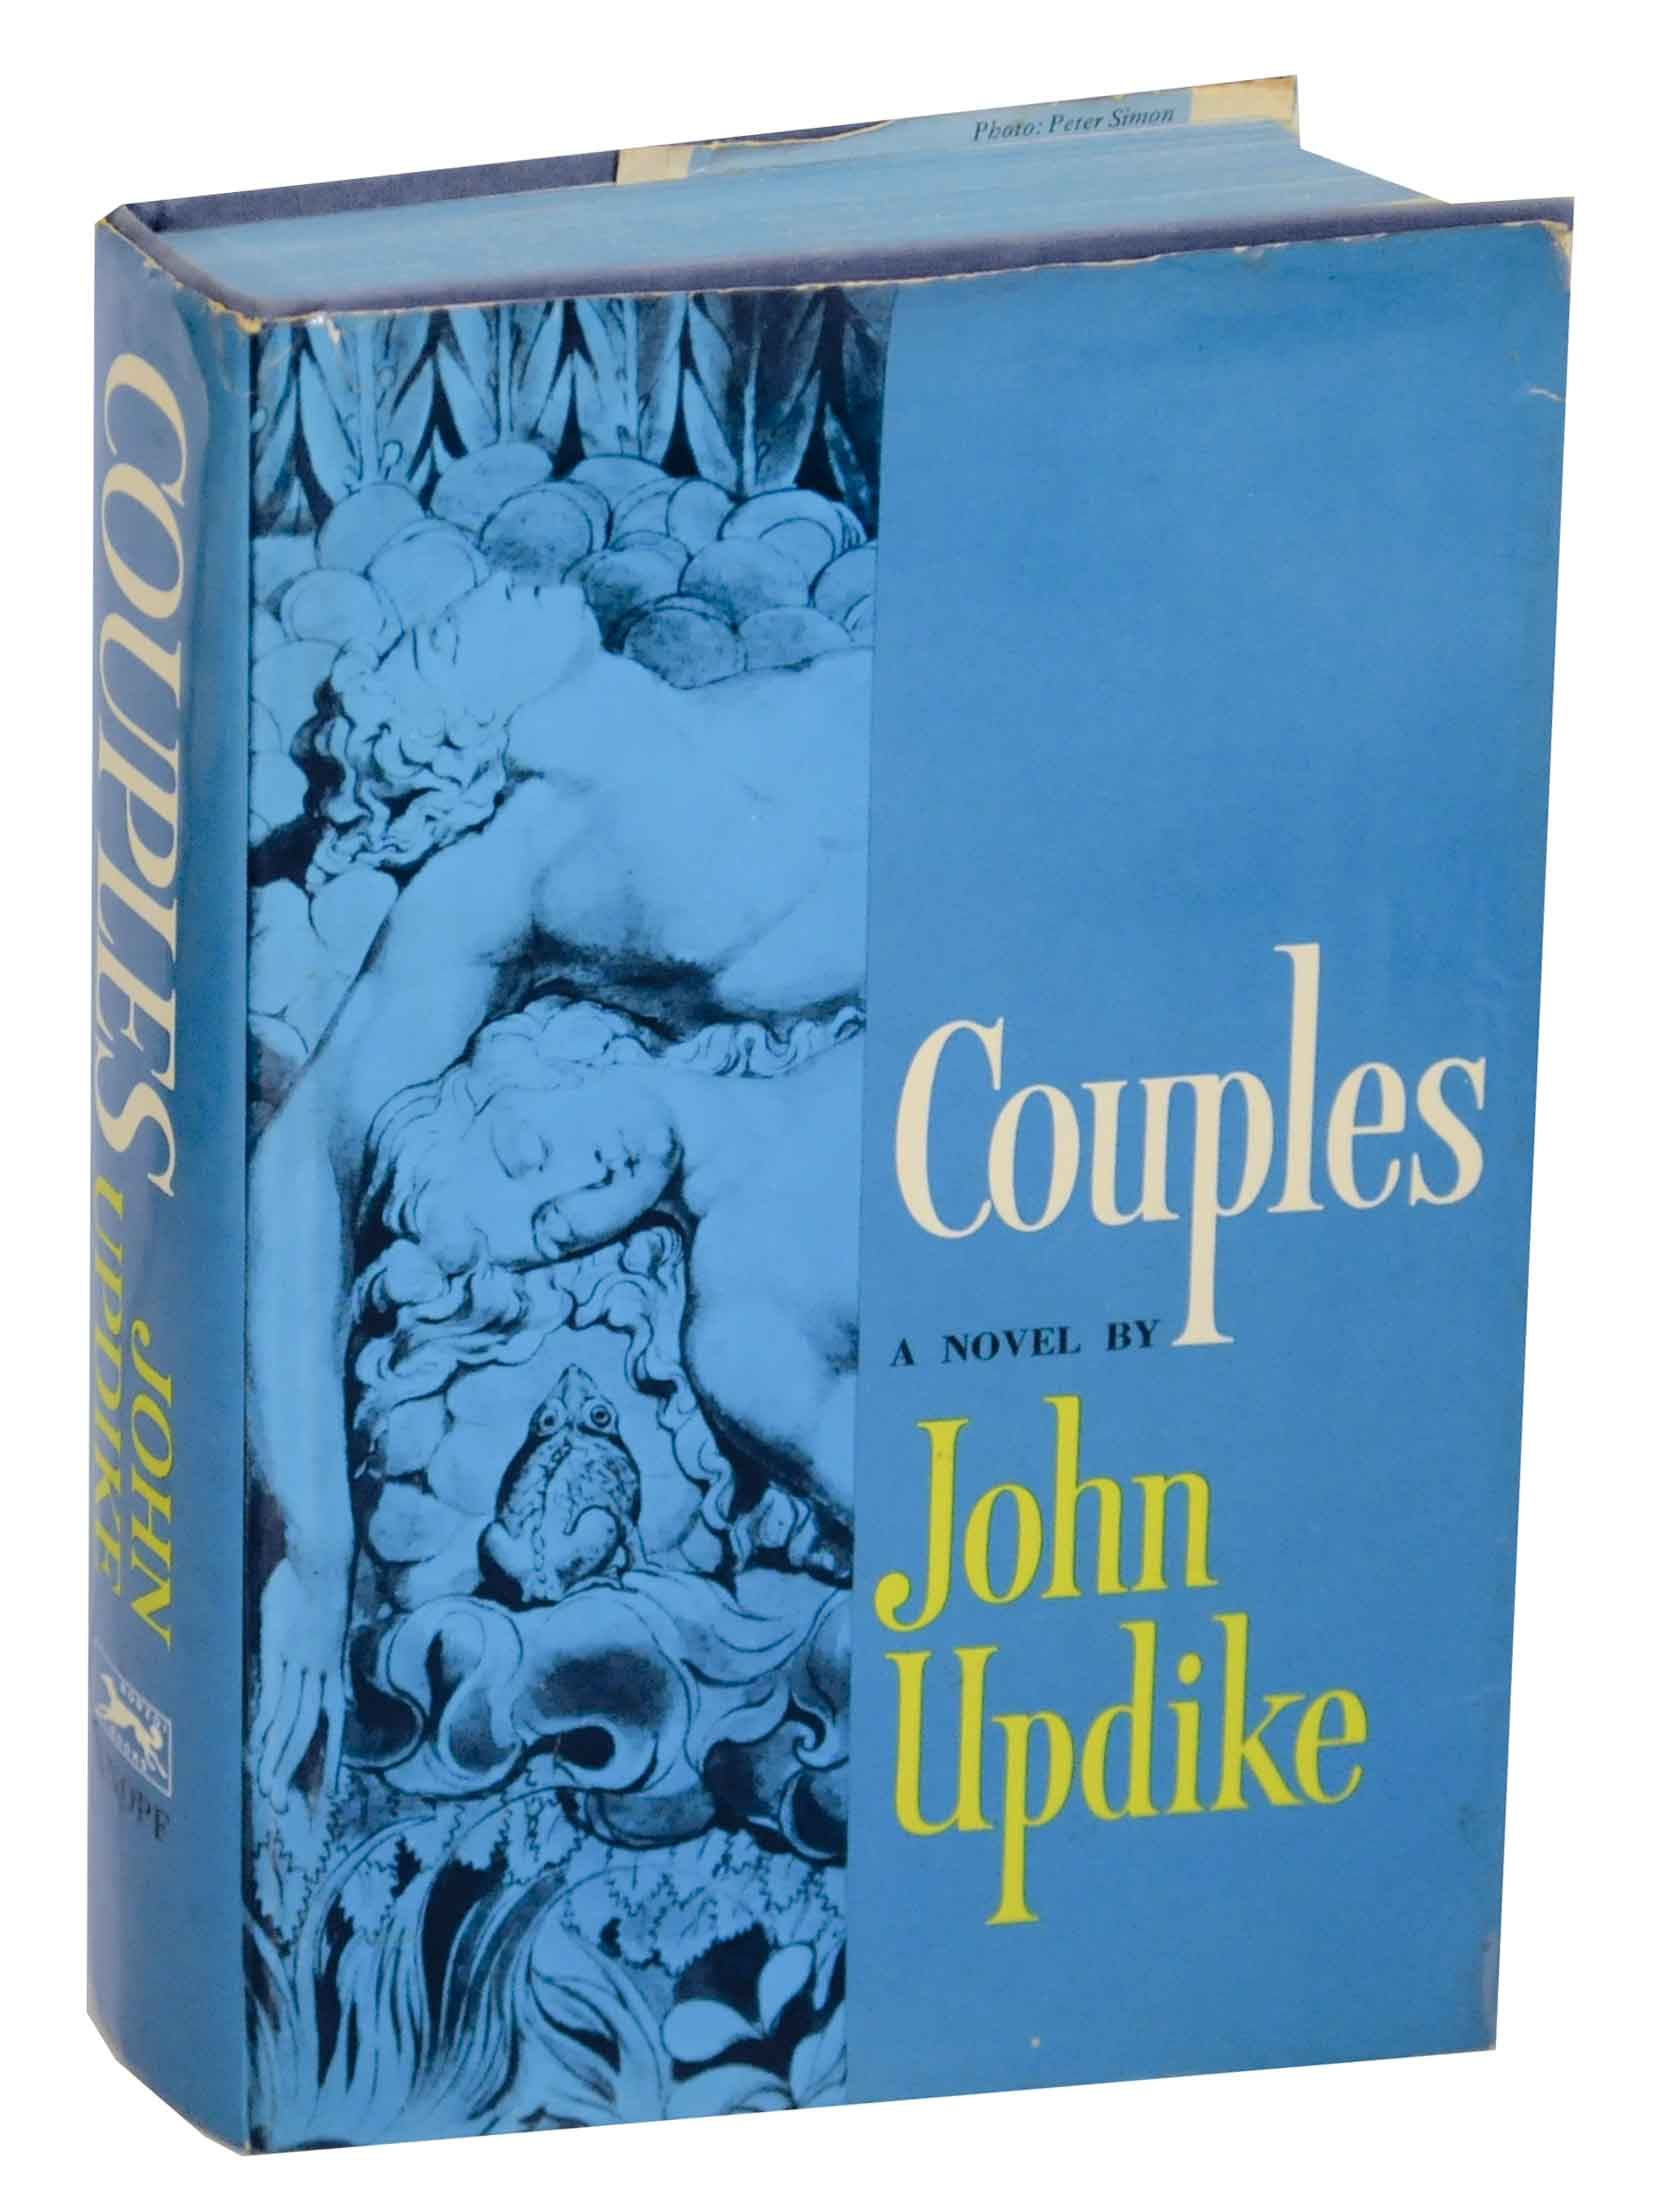 first kiss john updike Pigeon feathers, by john updike '55 knopf, new the people in john updike's world are tormented they live he describes a man's first kiss this way : her smeared in little unflattering the skin around her mouth it i had been given a face to the presence of bone--skull under teeth behind lips--impeded me his skill.